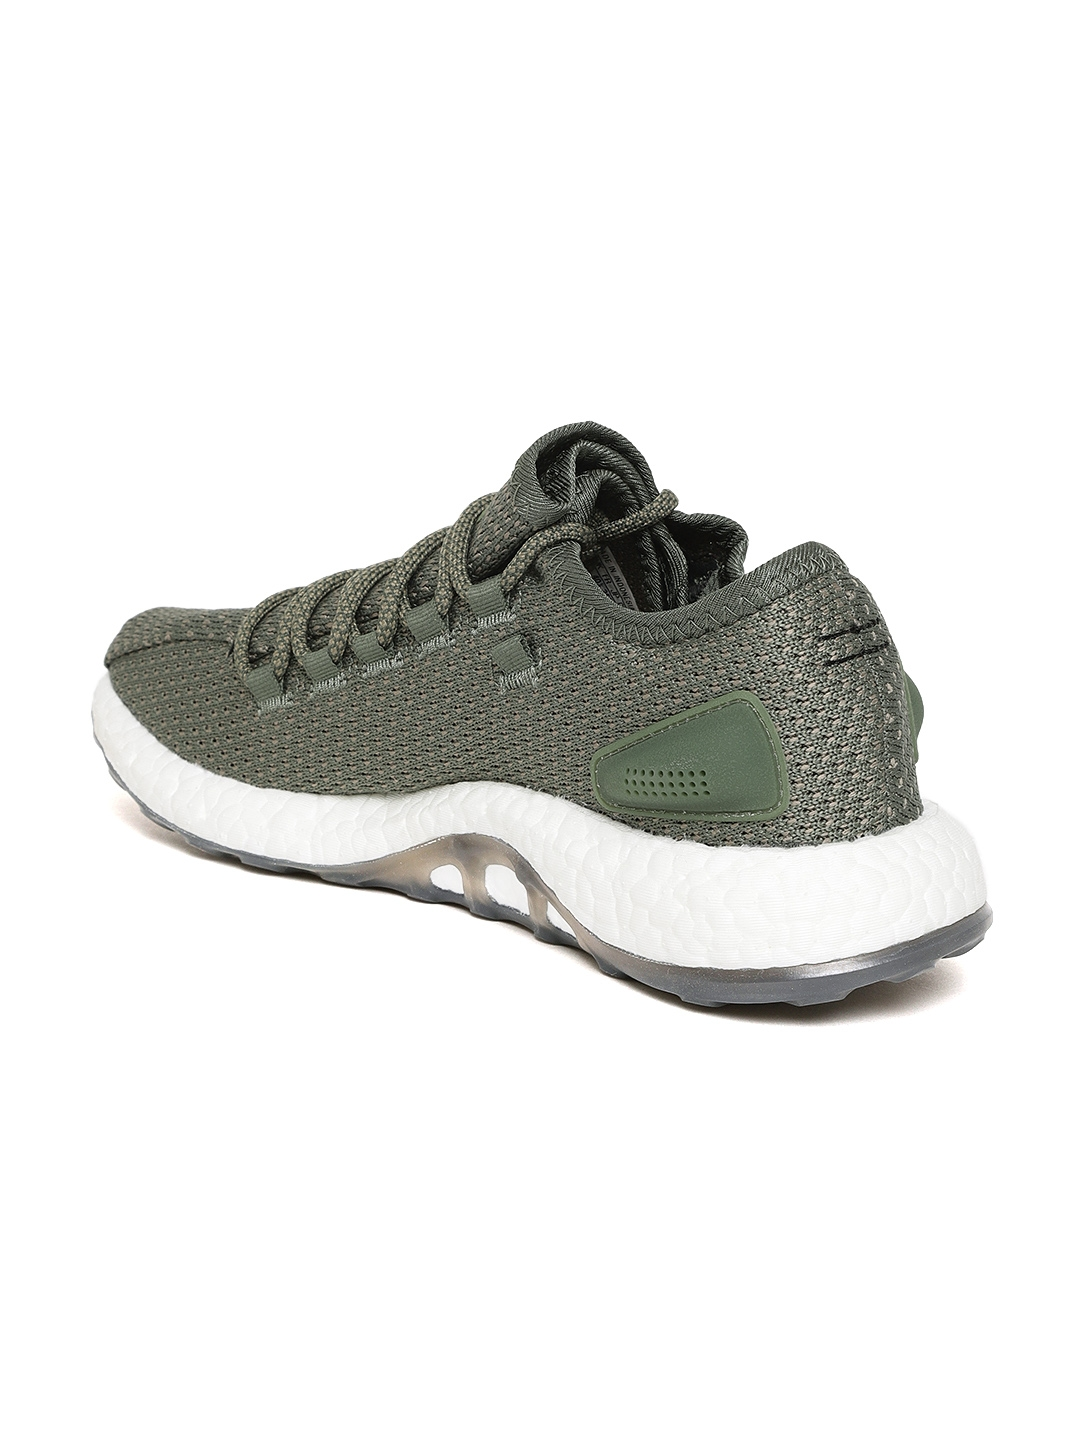 db13167db Buy ADIDAS Men Olive Green Pureboost Clima Running Shoes - Sports ...